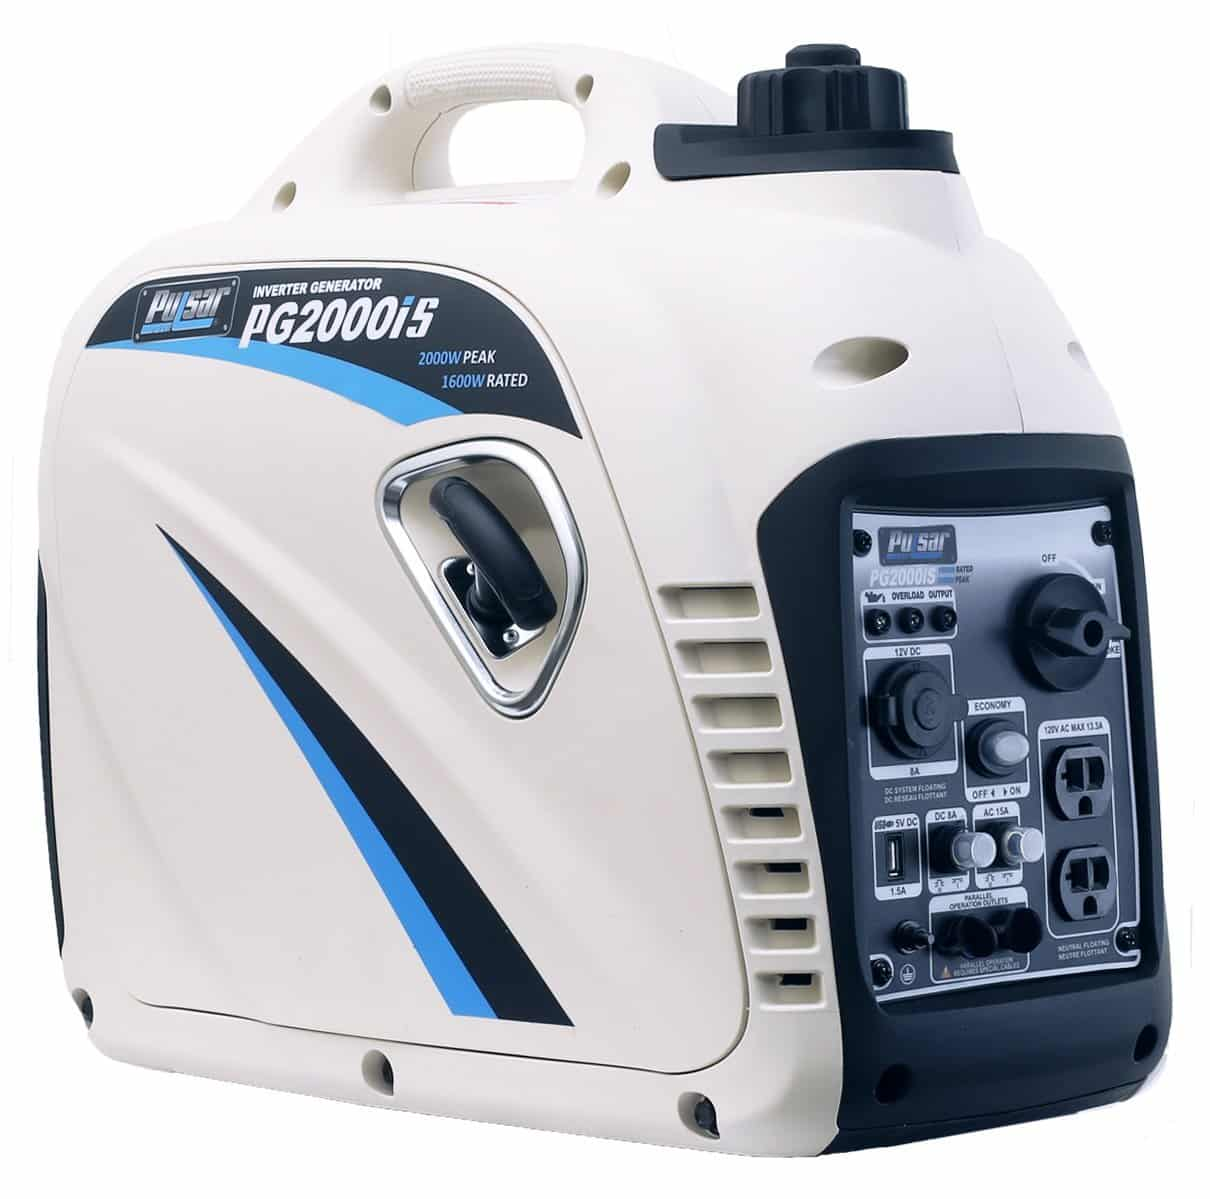 Pulsar Inverter Generator Review